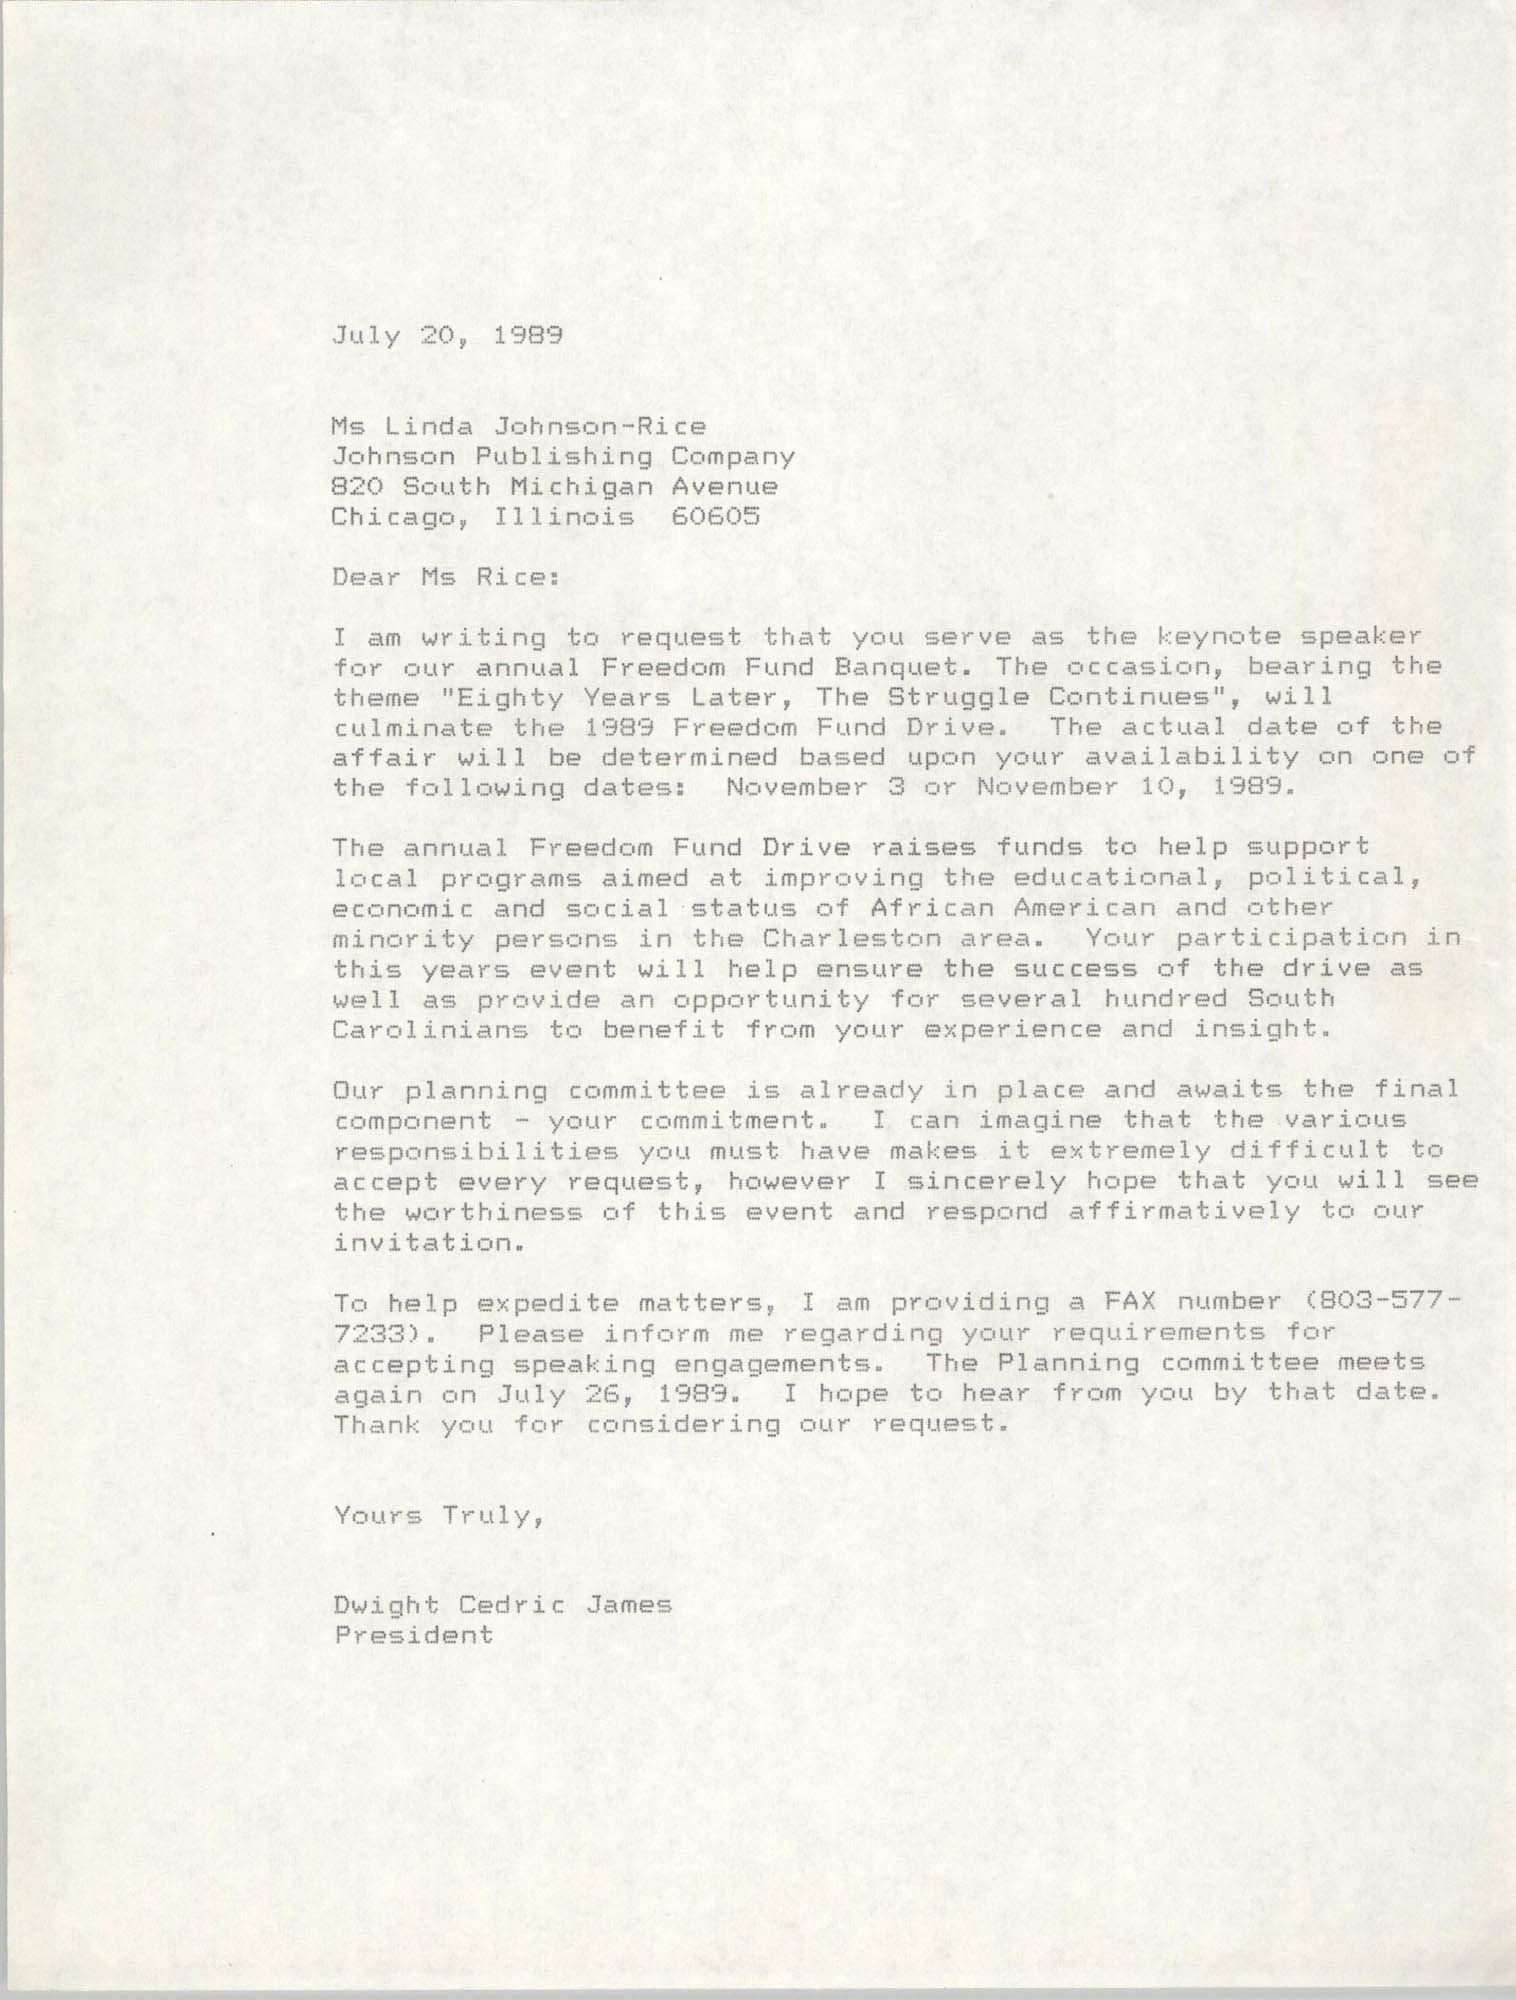 Draft, Letter from Dwight C. James to Linda Johnson-Rice, July 20, 1989